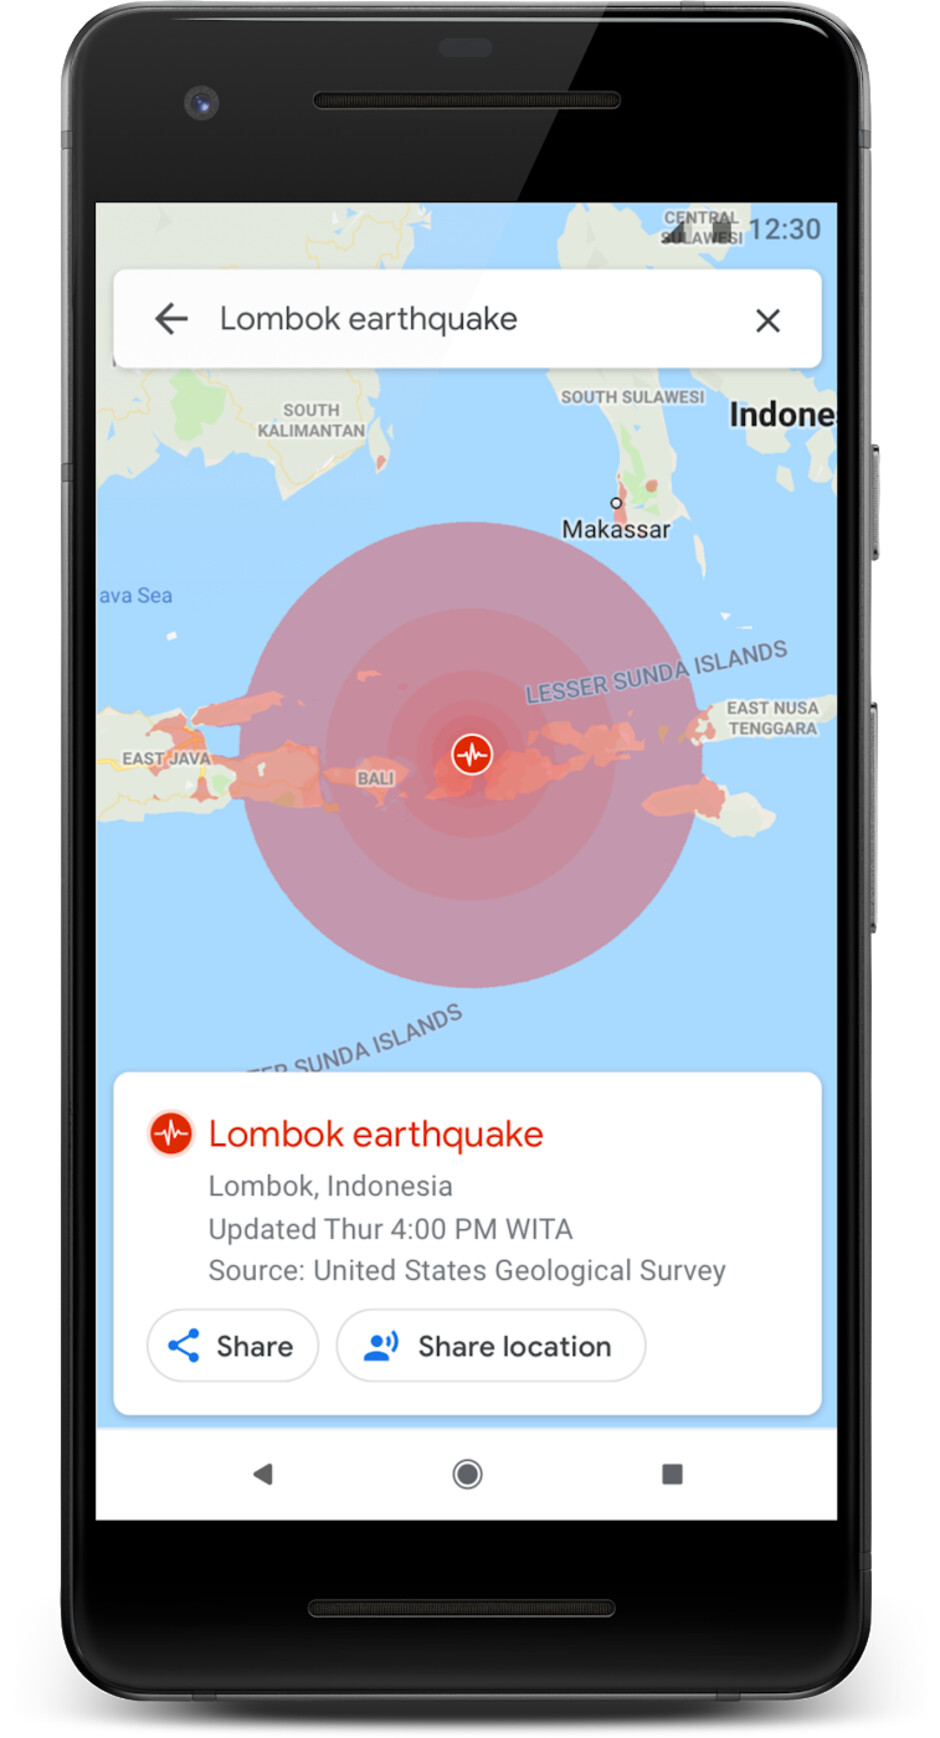 Earthquake, flood, and hurricane maps - Google Maps is getting new features that could potentially save thousands of lives